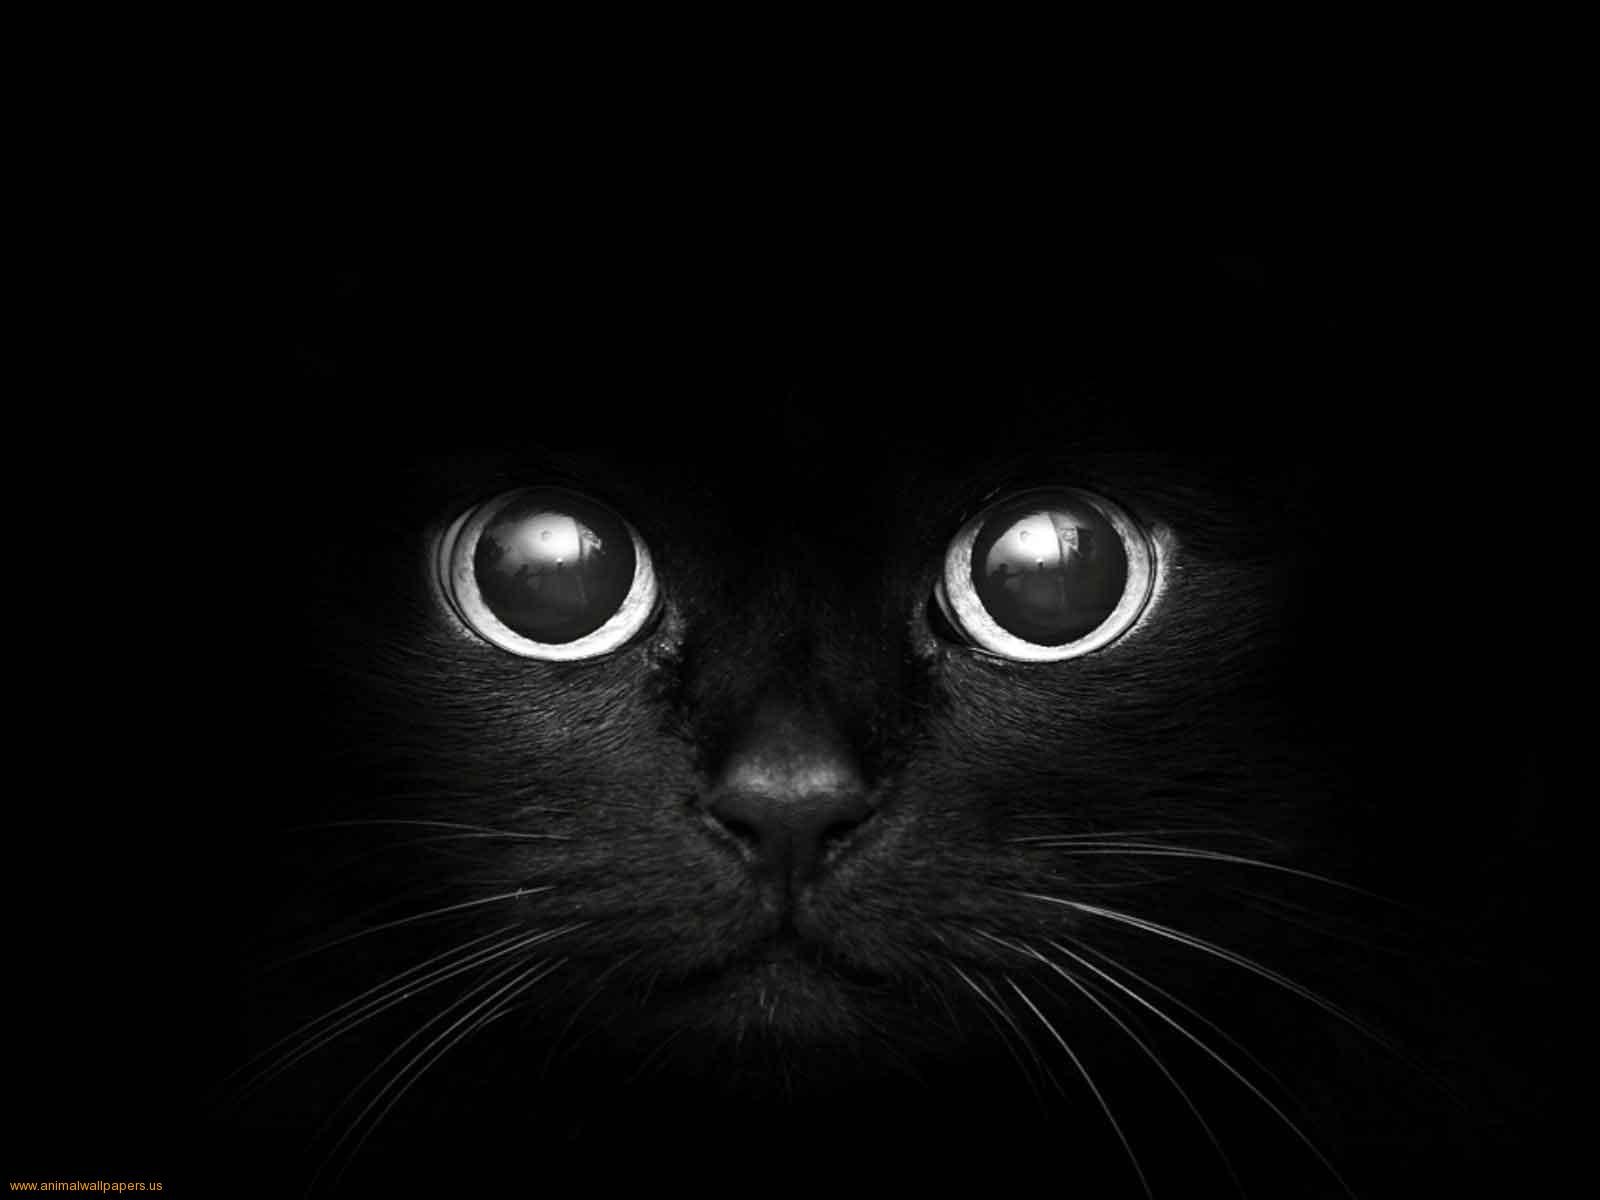 Cat Eyes HD Wallpaper 17 For Desktop Background